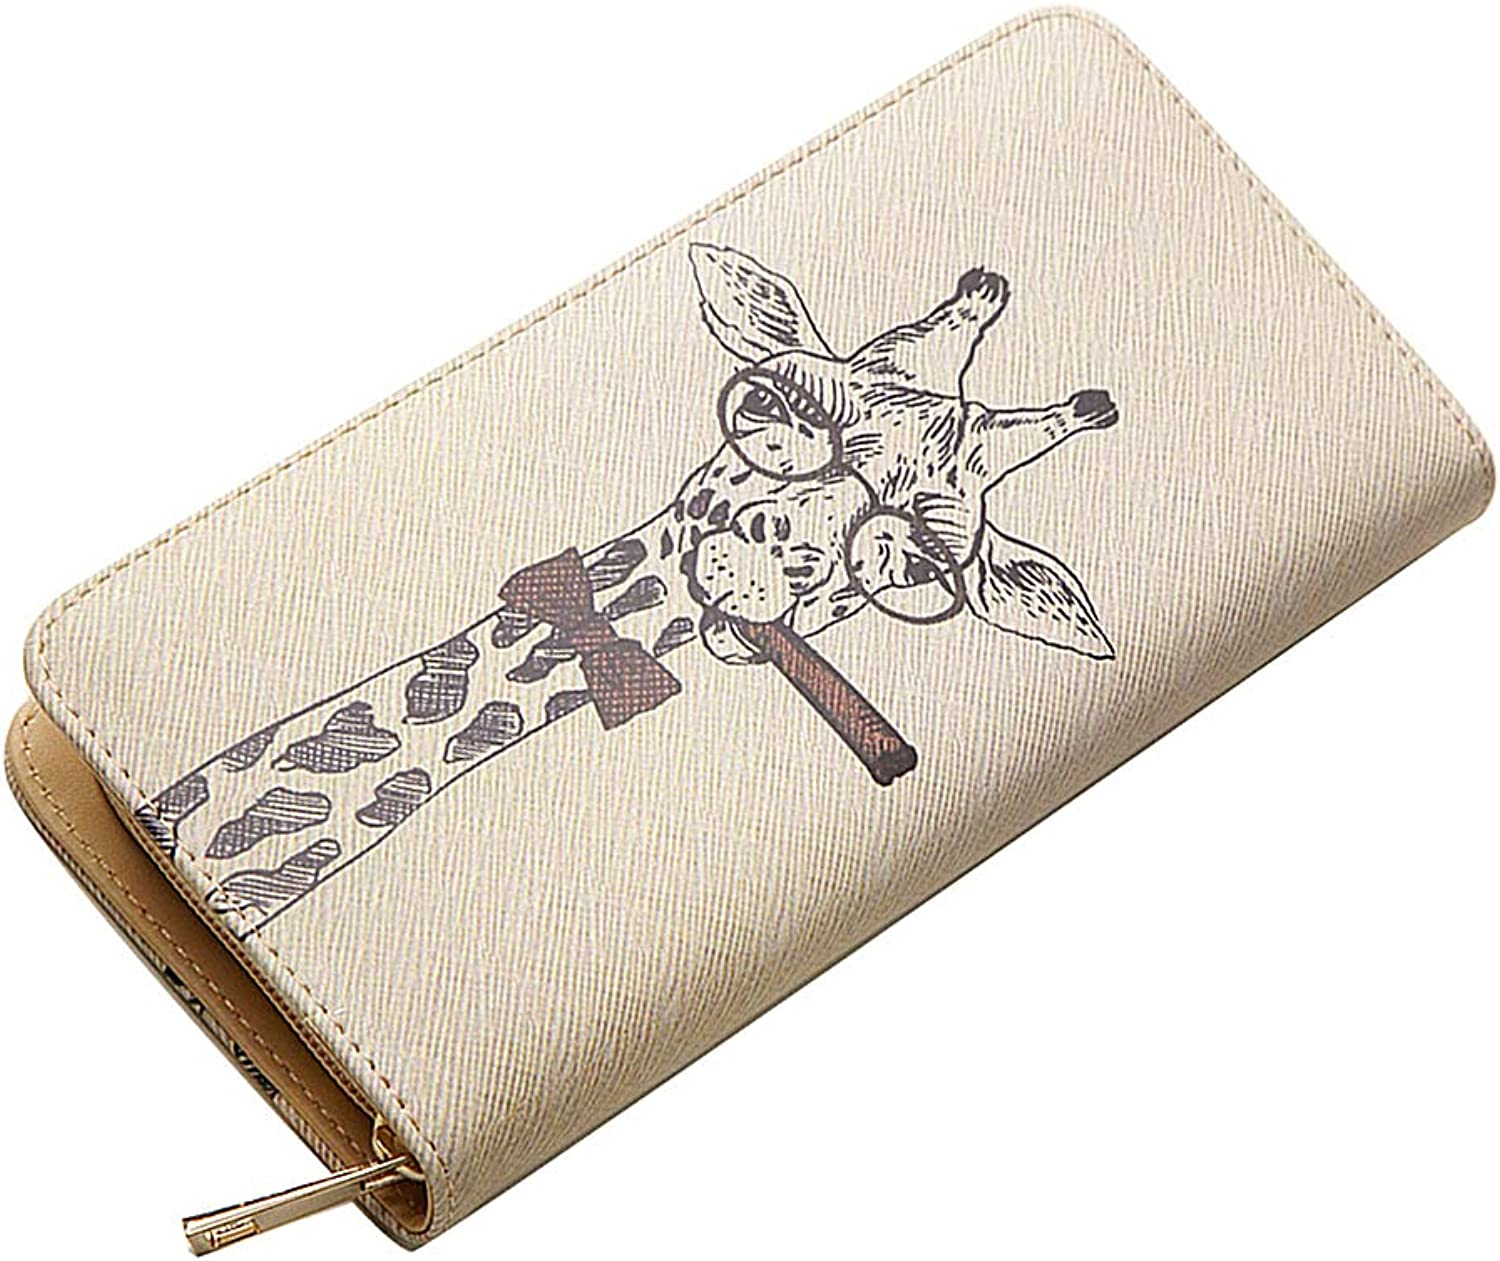 Woolala New Arrival - Unique Illustration Wallet Zipper Accordion Clutch Long Purse for Birthday Holiday Gift, Giraffe